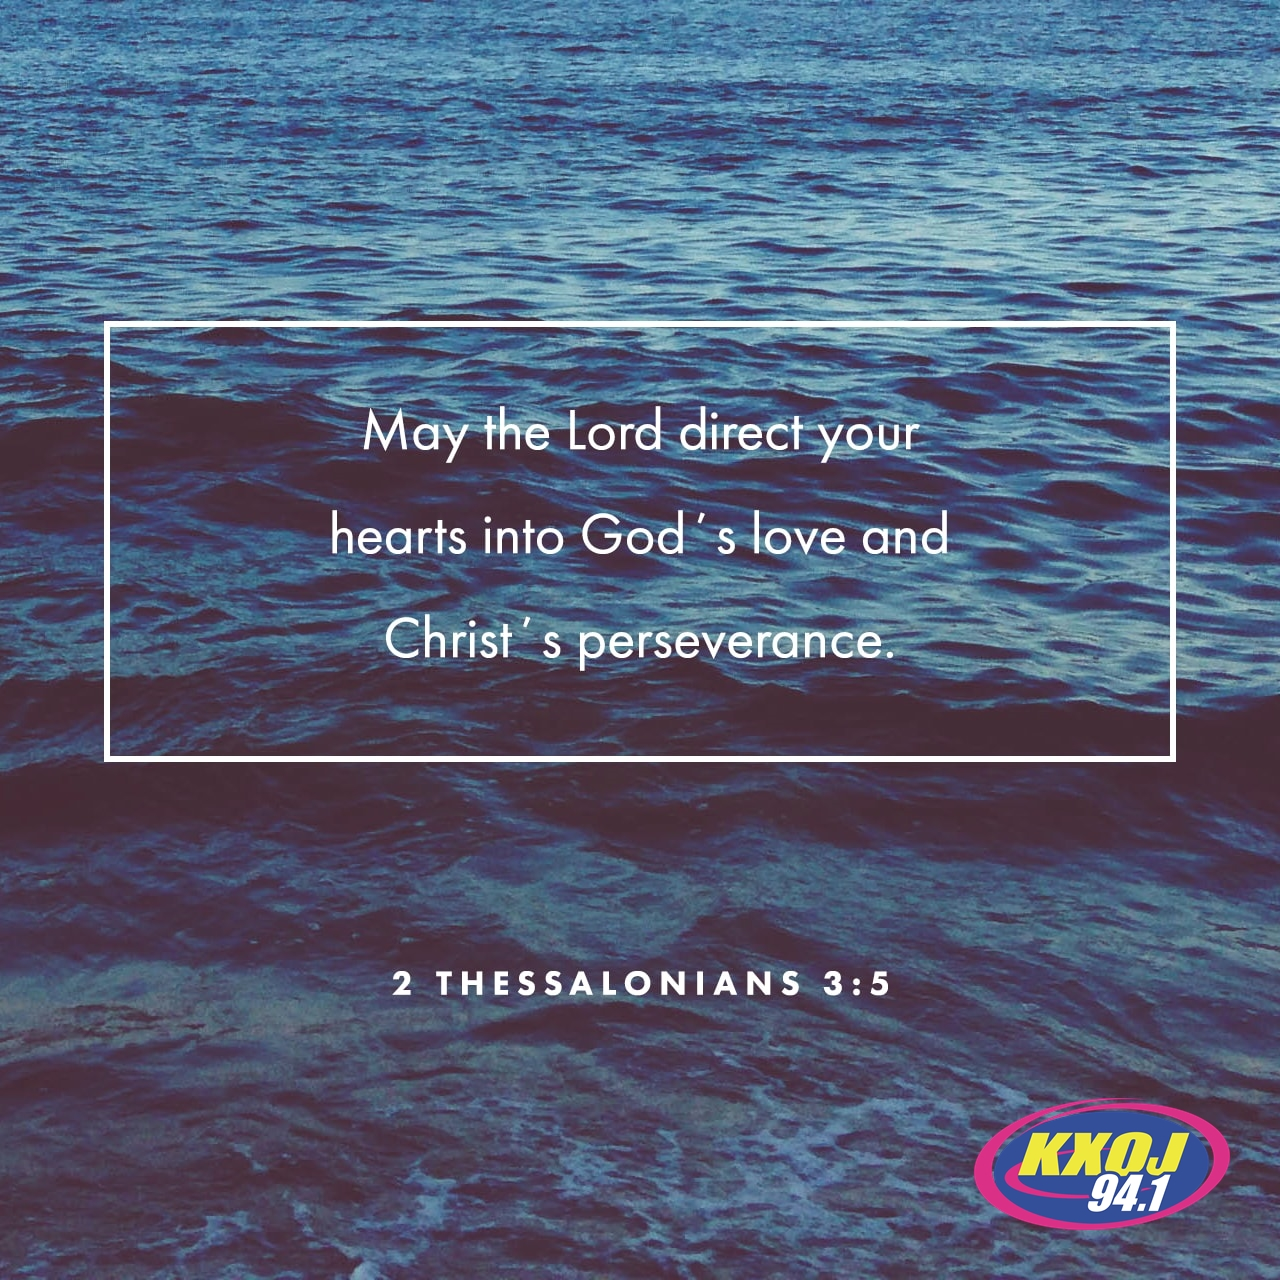 September 15th - 2 Thessalonians 3:5